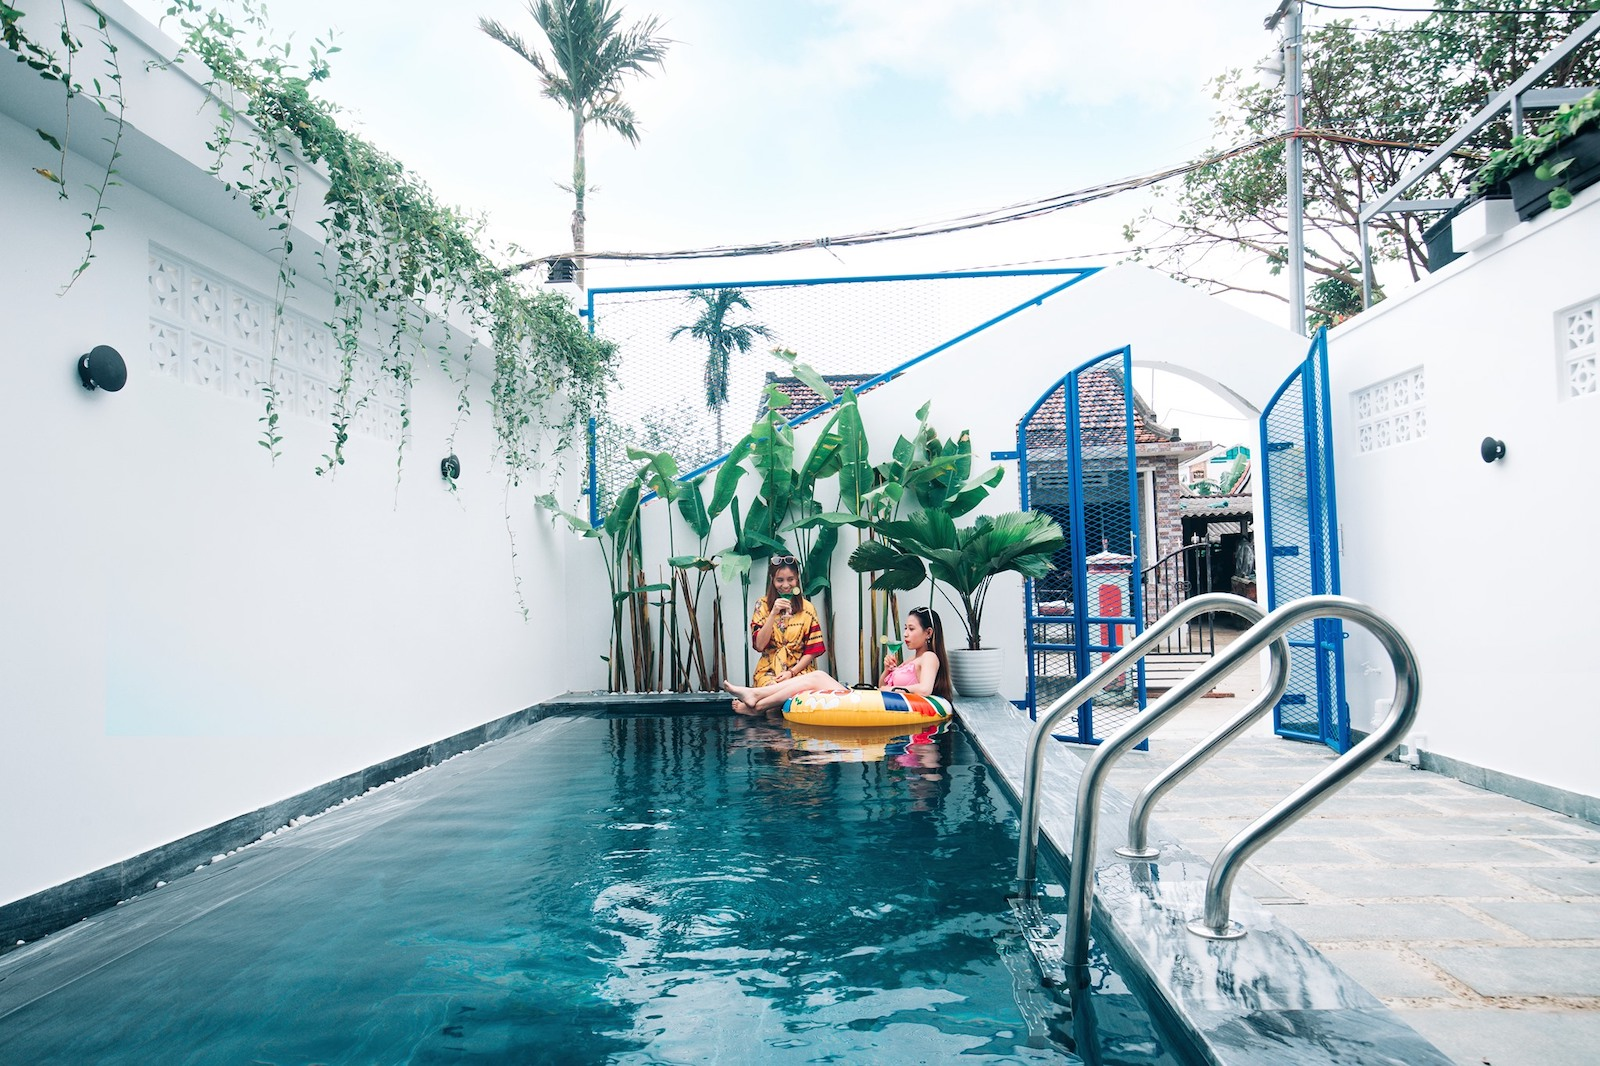 Image of two girls at the Hoi An Lazy Bear Hostel pool in Vietnam